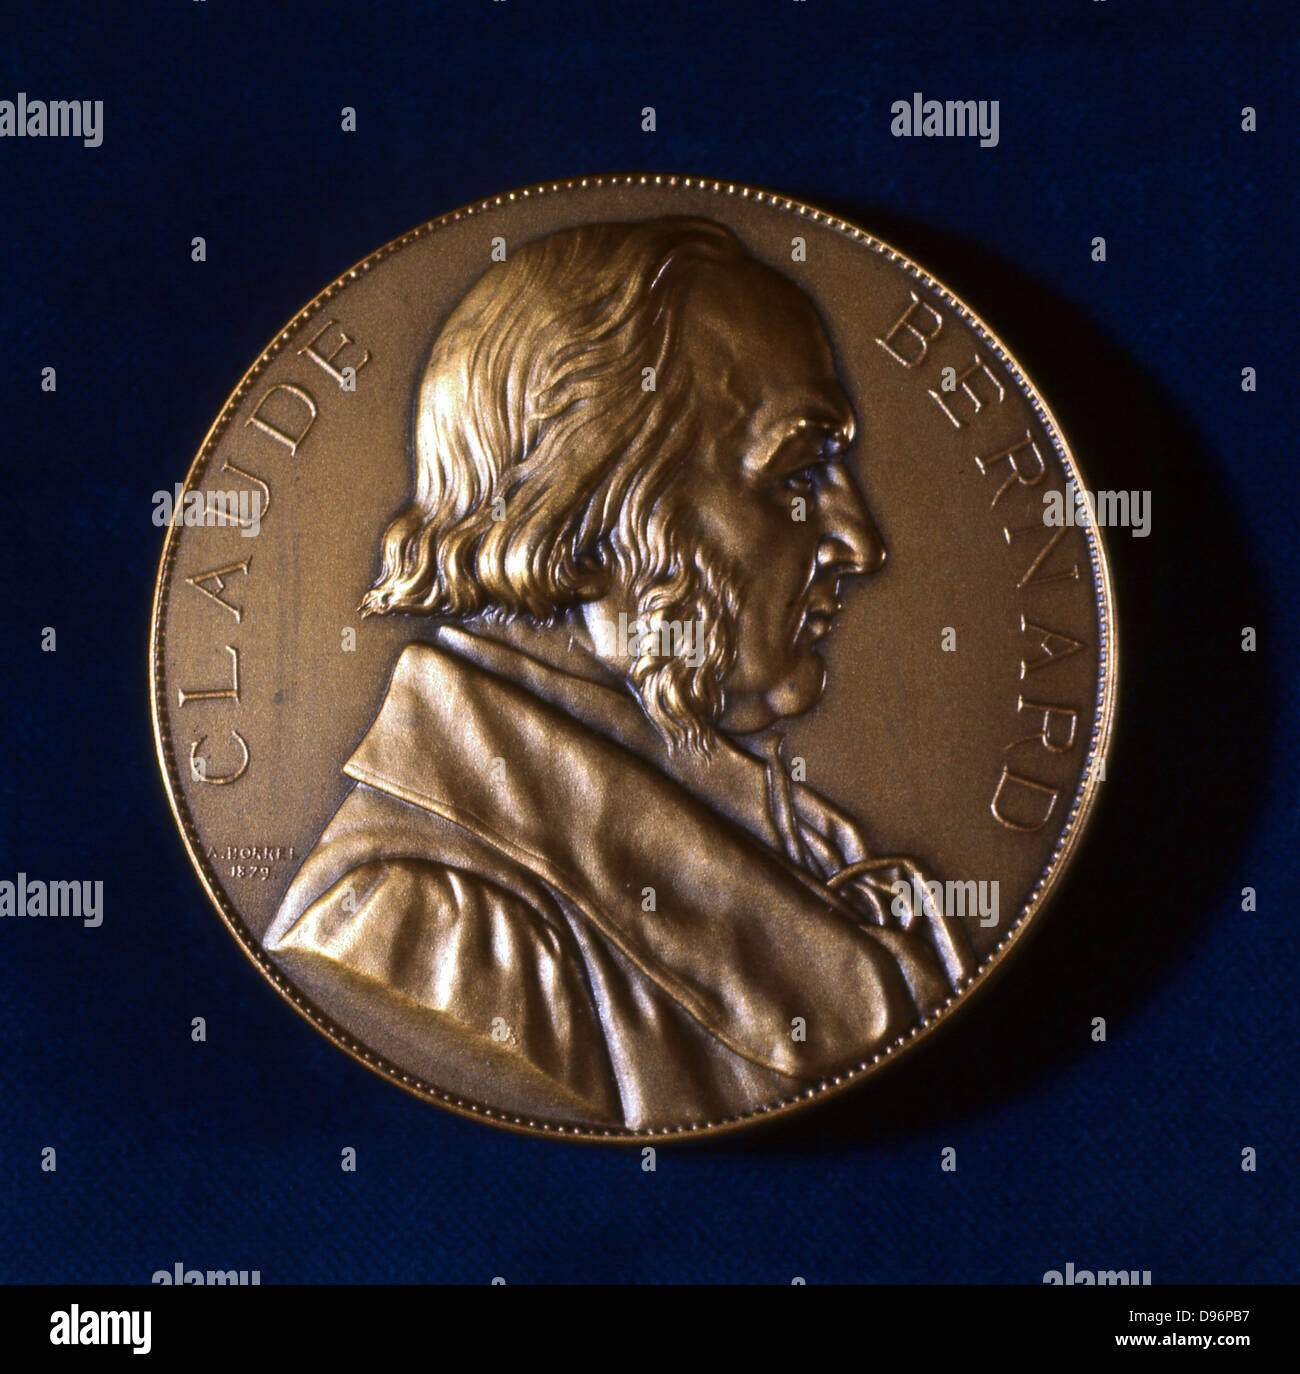 Claude Bernard, French physiologist. From the obverse of a commemorative medal. Bernard (1813-1878) investigated - Stock Image